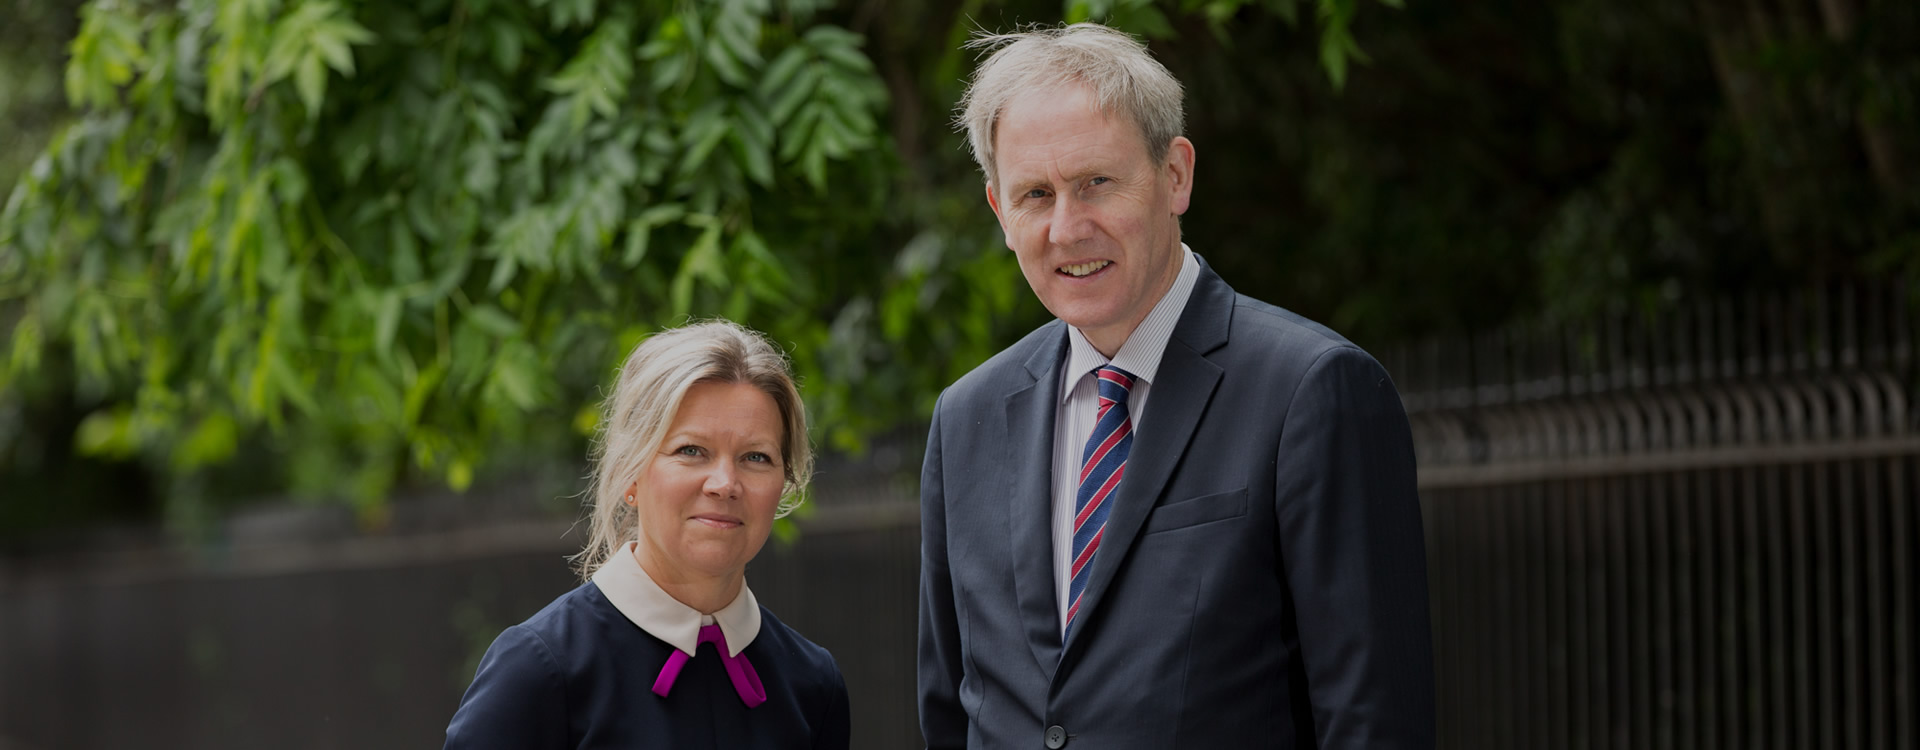 Picture of Thomas Barry & Natasha Dunne from Thomas Barry & Company Solicitors, Dublin